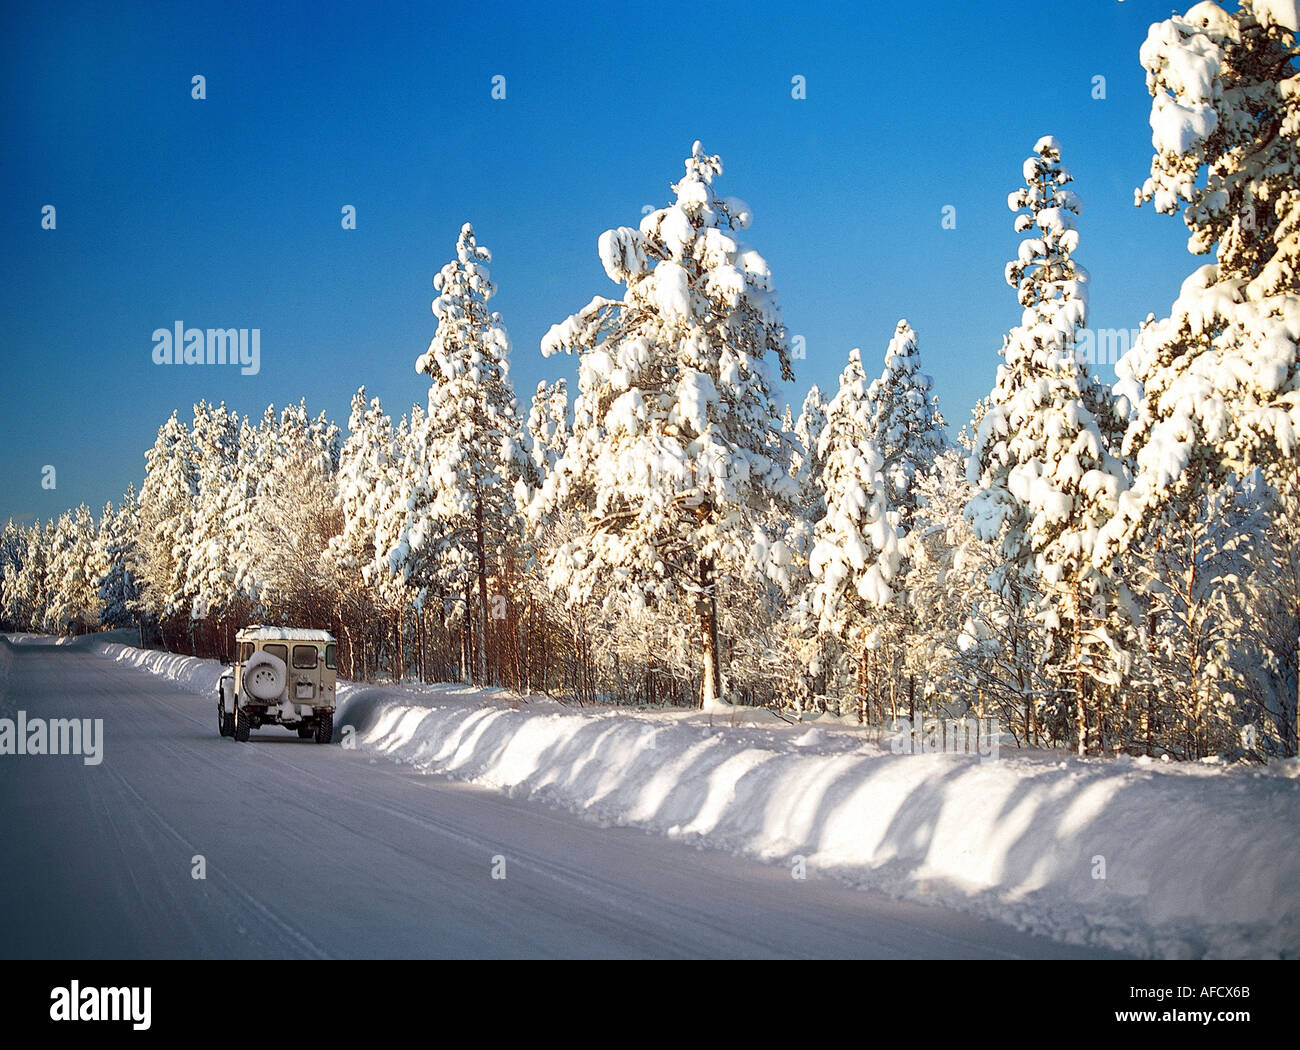 geography / travel, Sweden, landscapes, province Dalarna, jeep on snow-covered road, winter, Europe, Scandinavia, landscape, sea - Stock Image